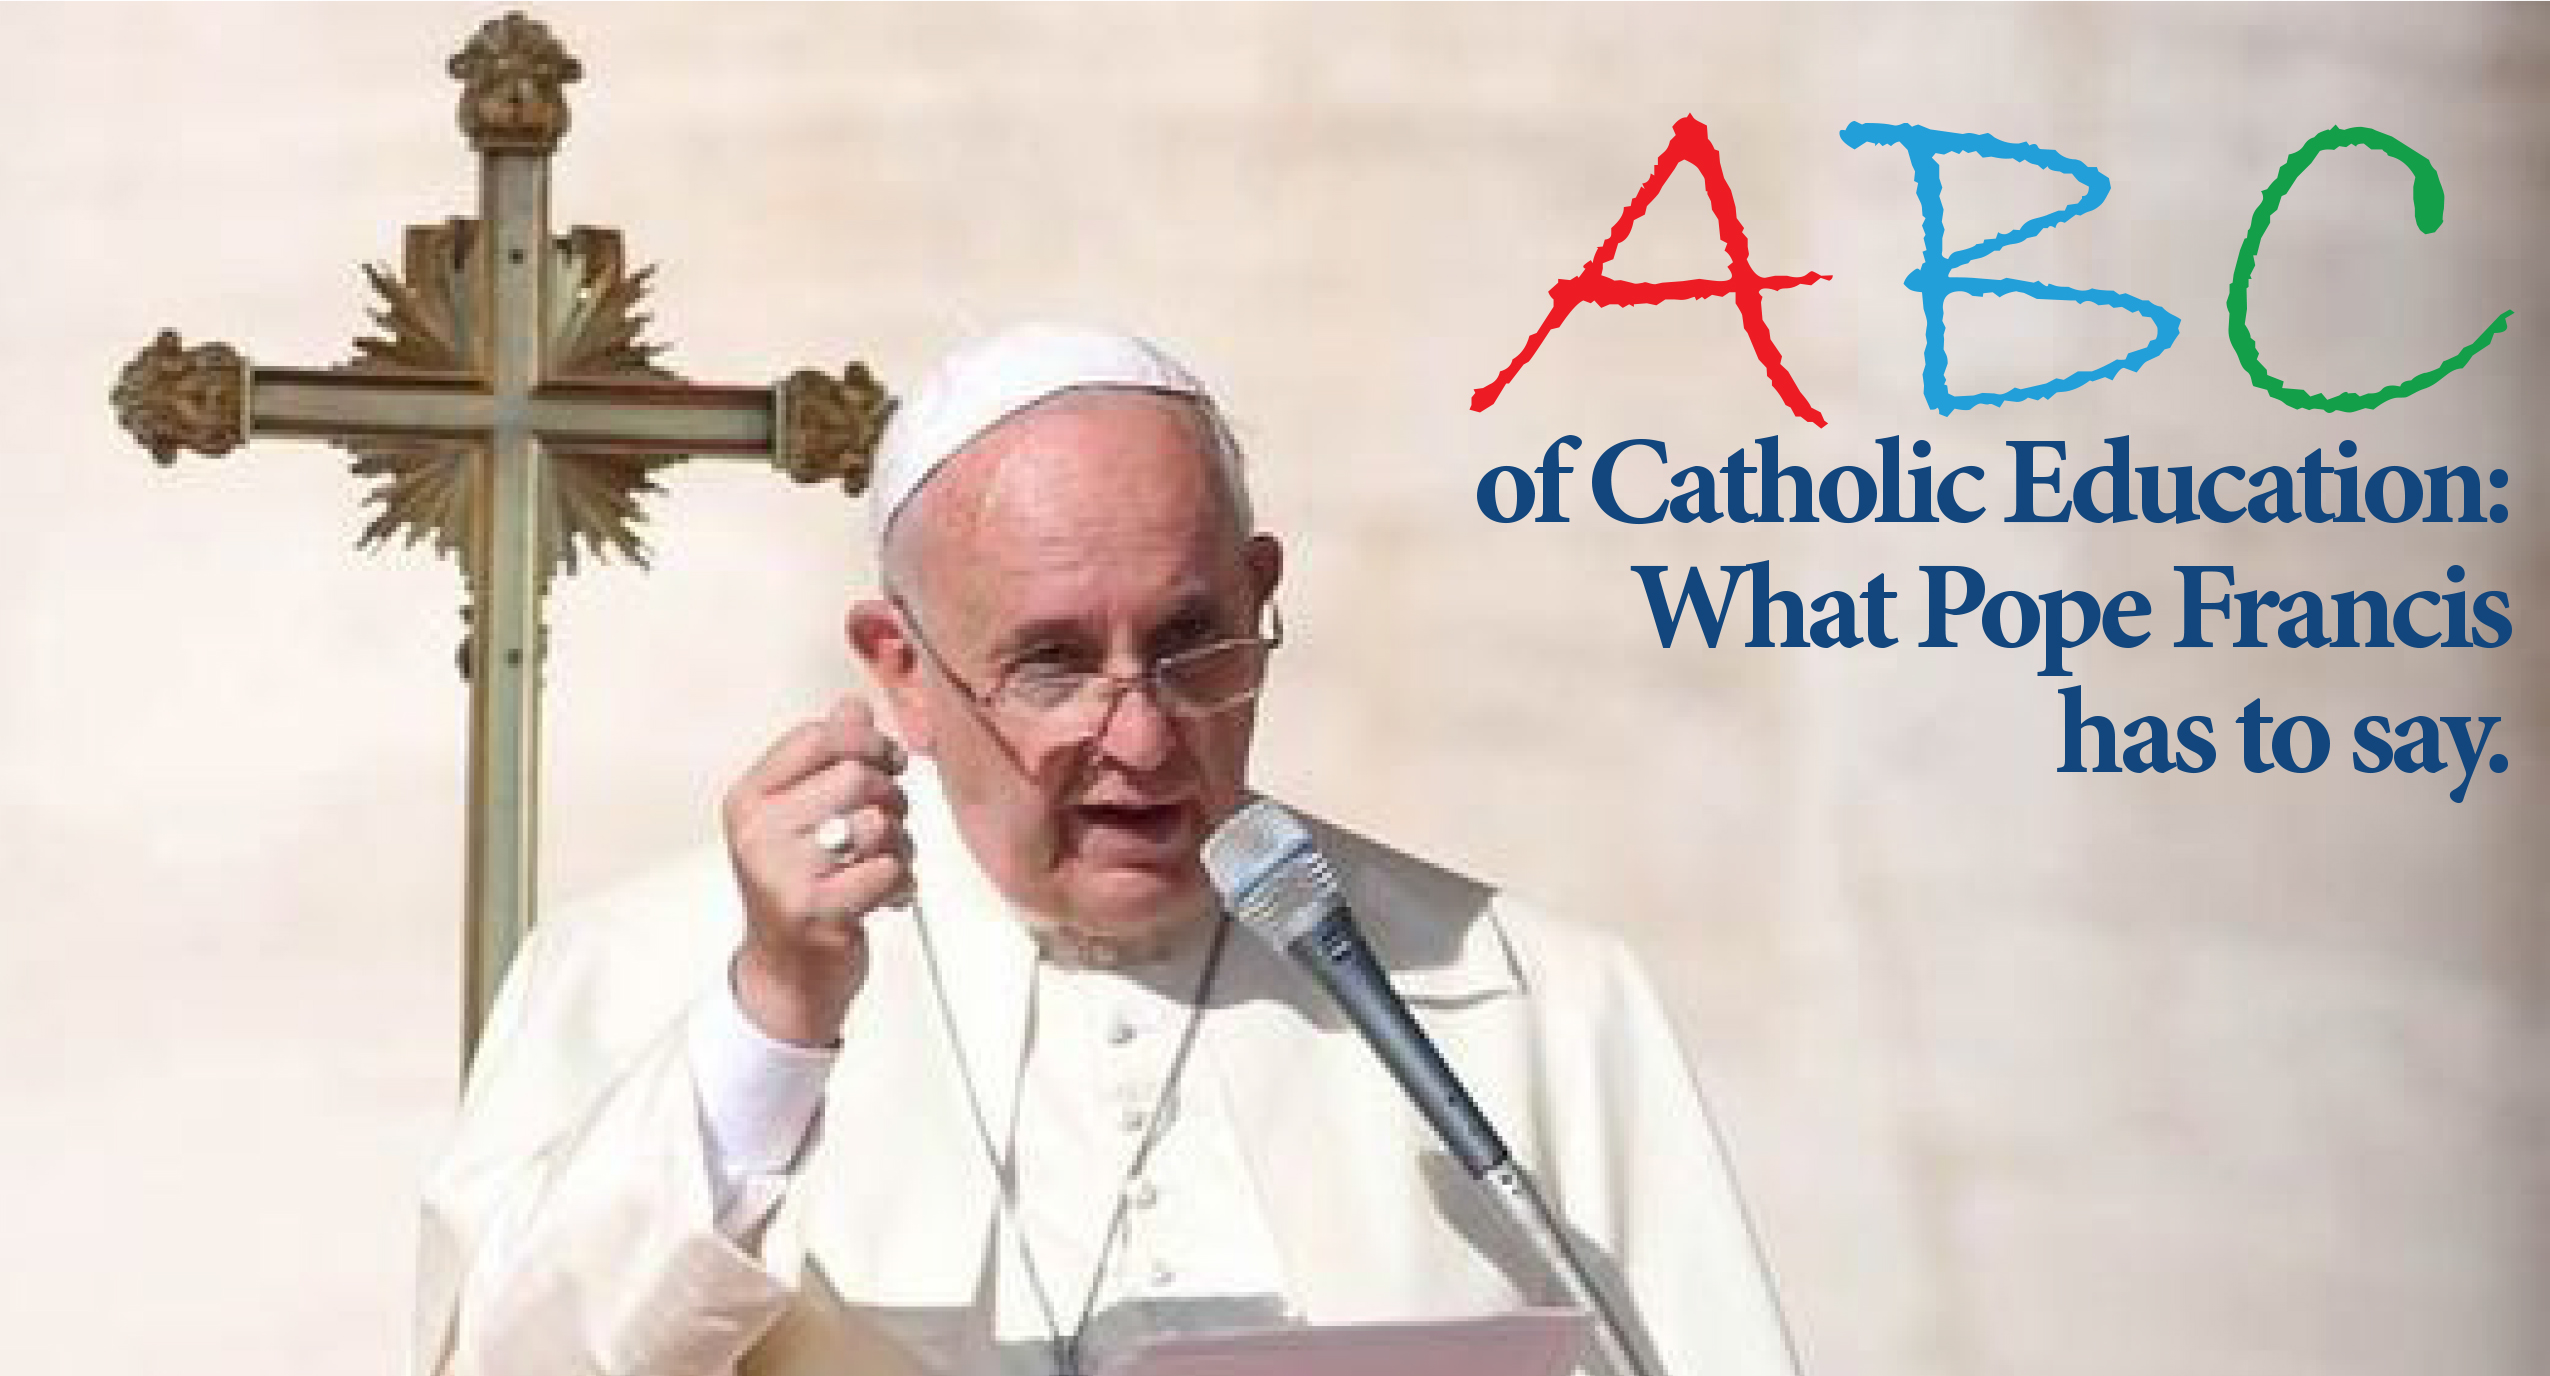 abc of catholic education according to pope francis 1